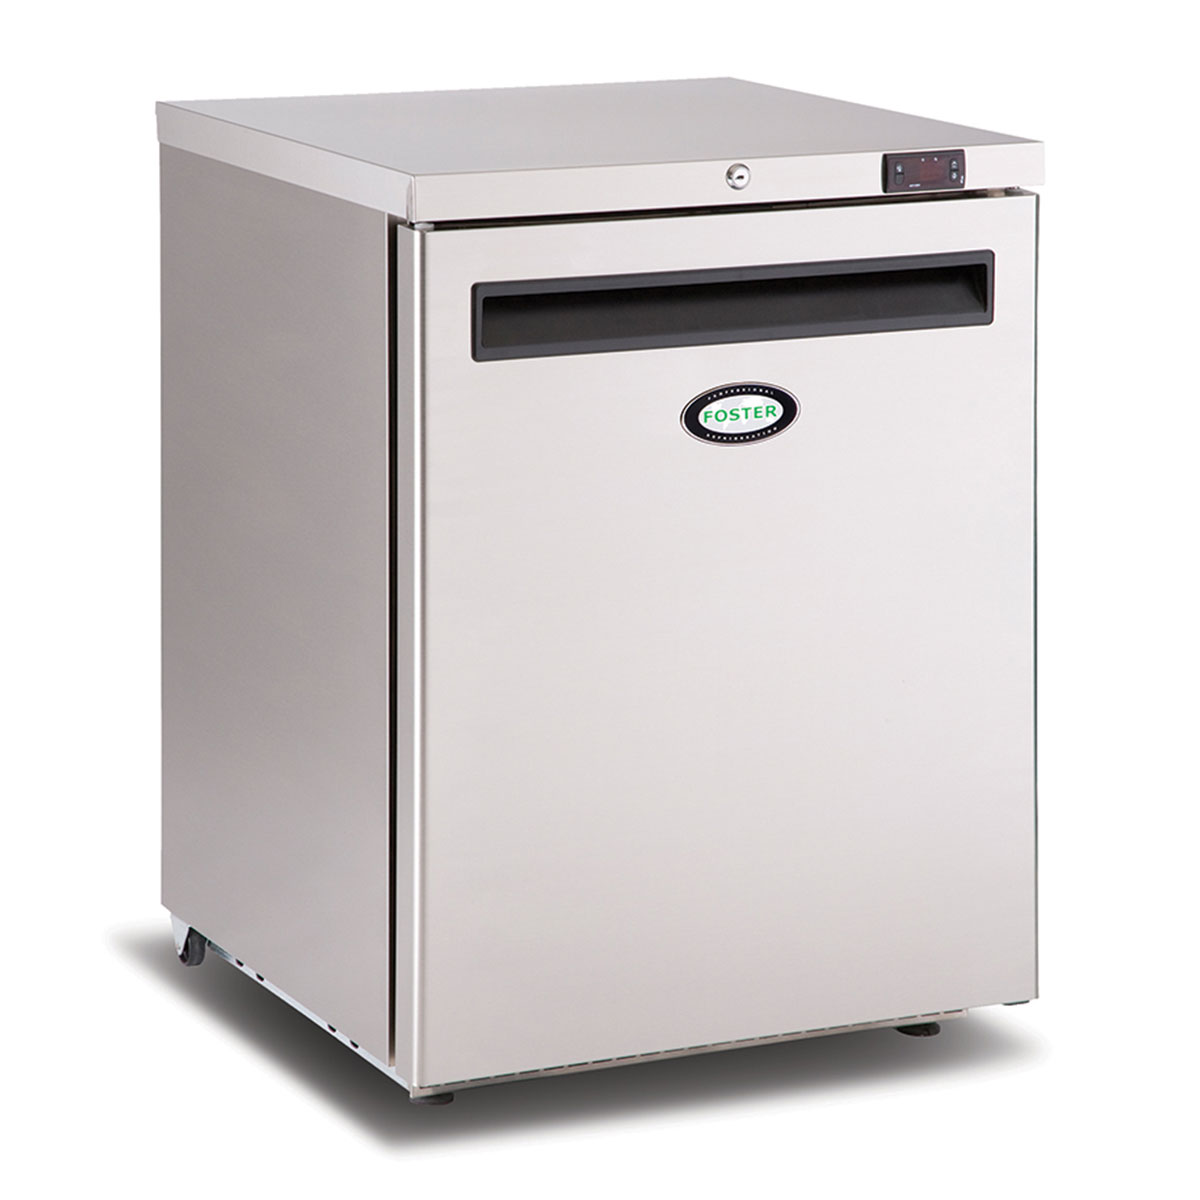 Foster Undercounter cabinet 1 - Refrigeration Equipment Suppliers in Cornwall